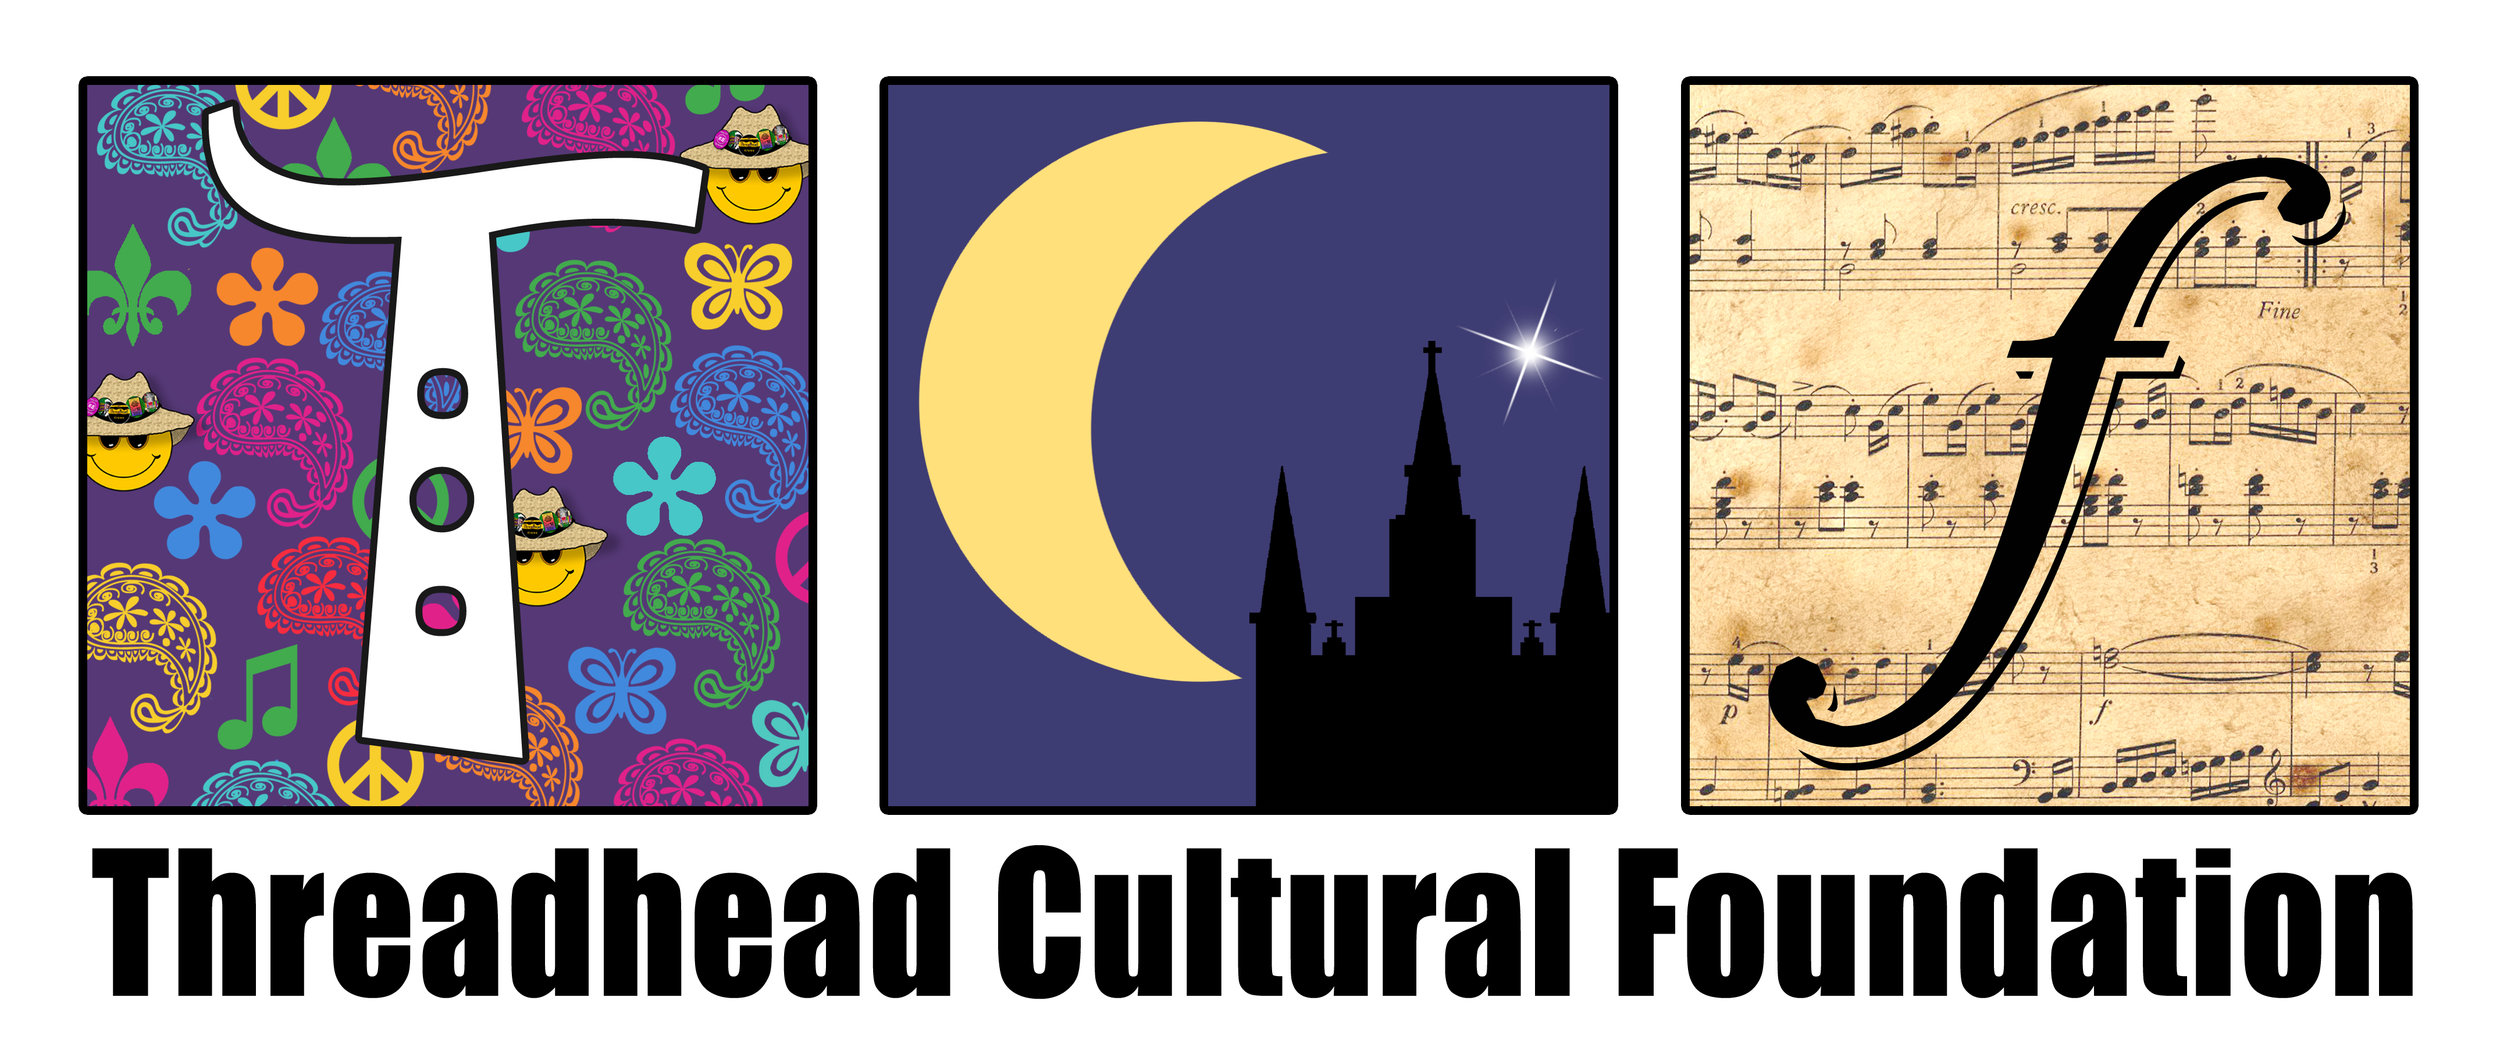 threadhead-cultural-foundation-logo.jpg